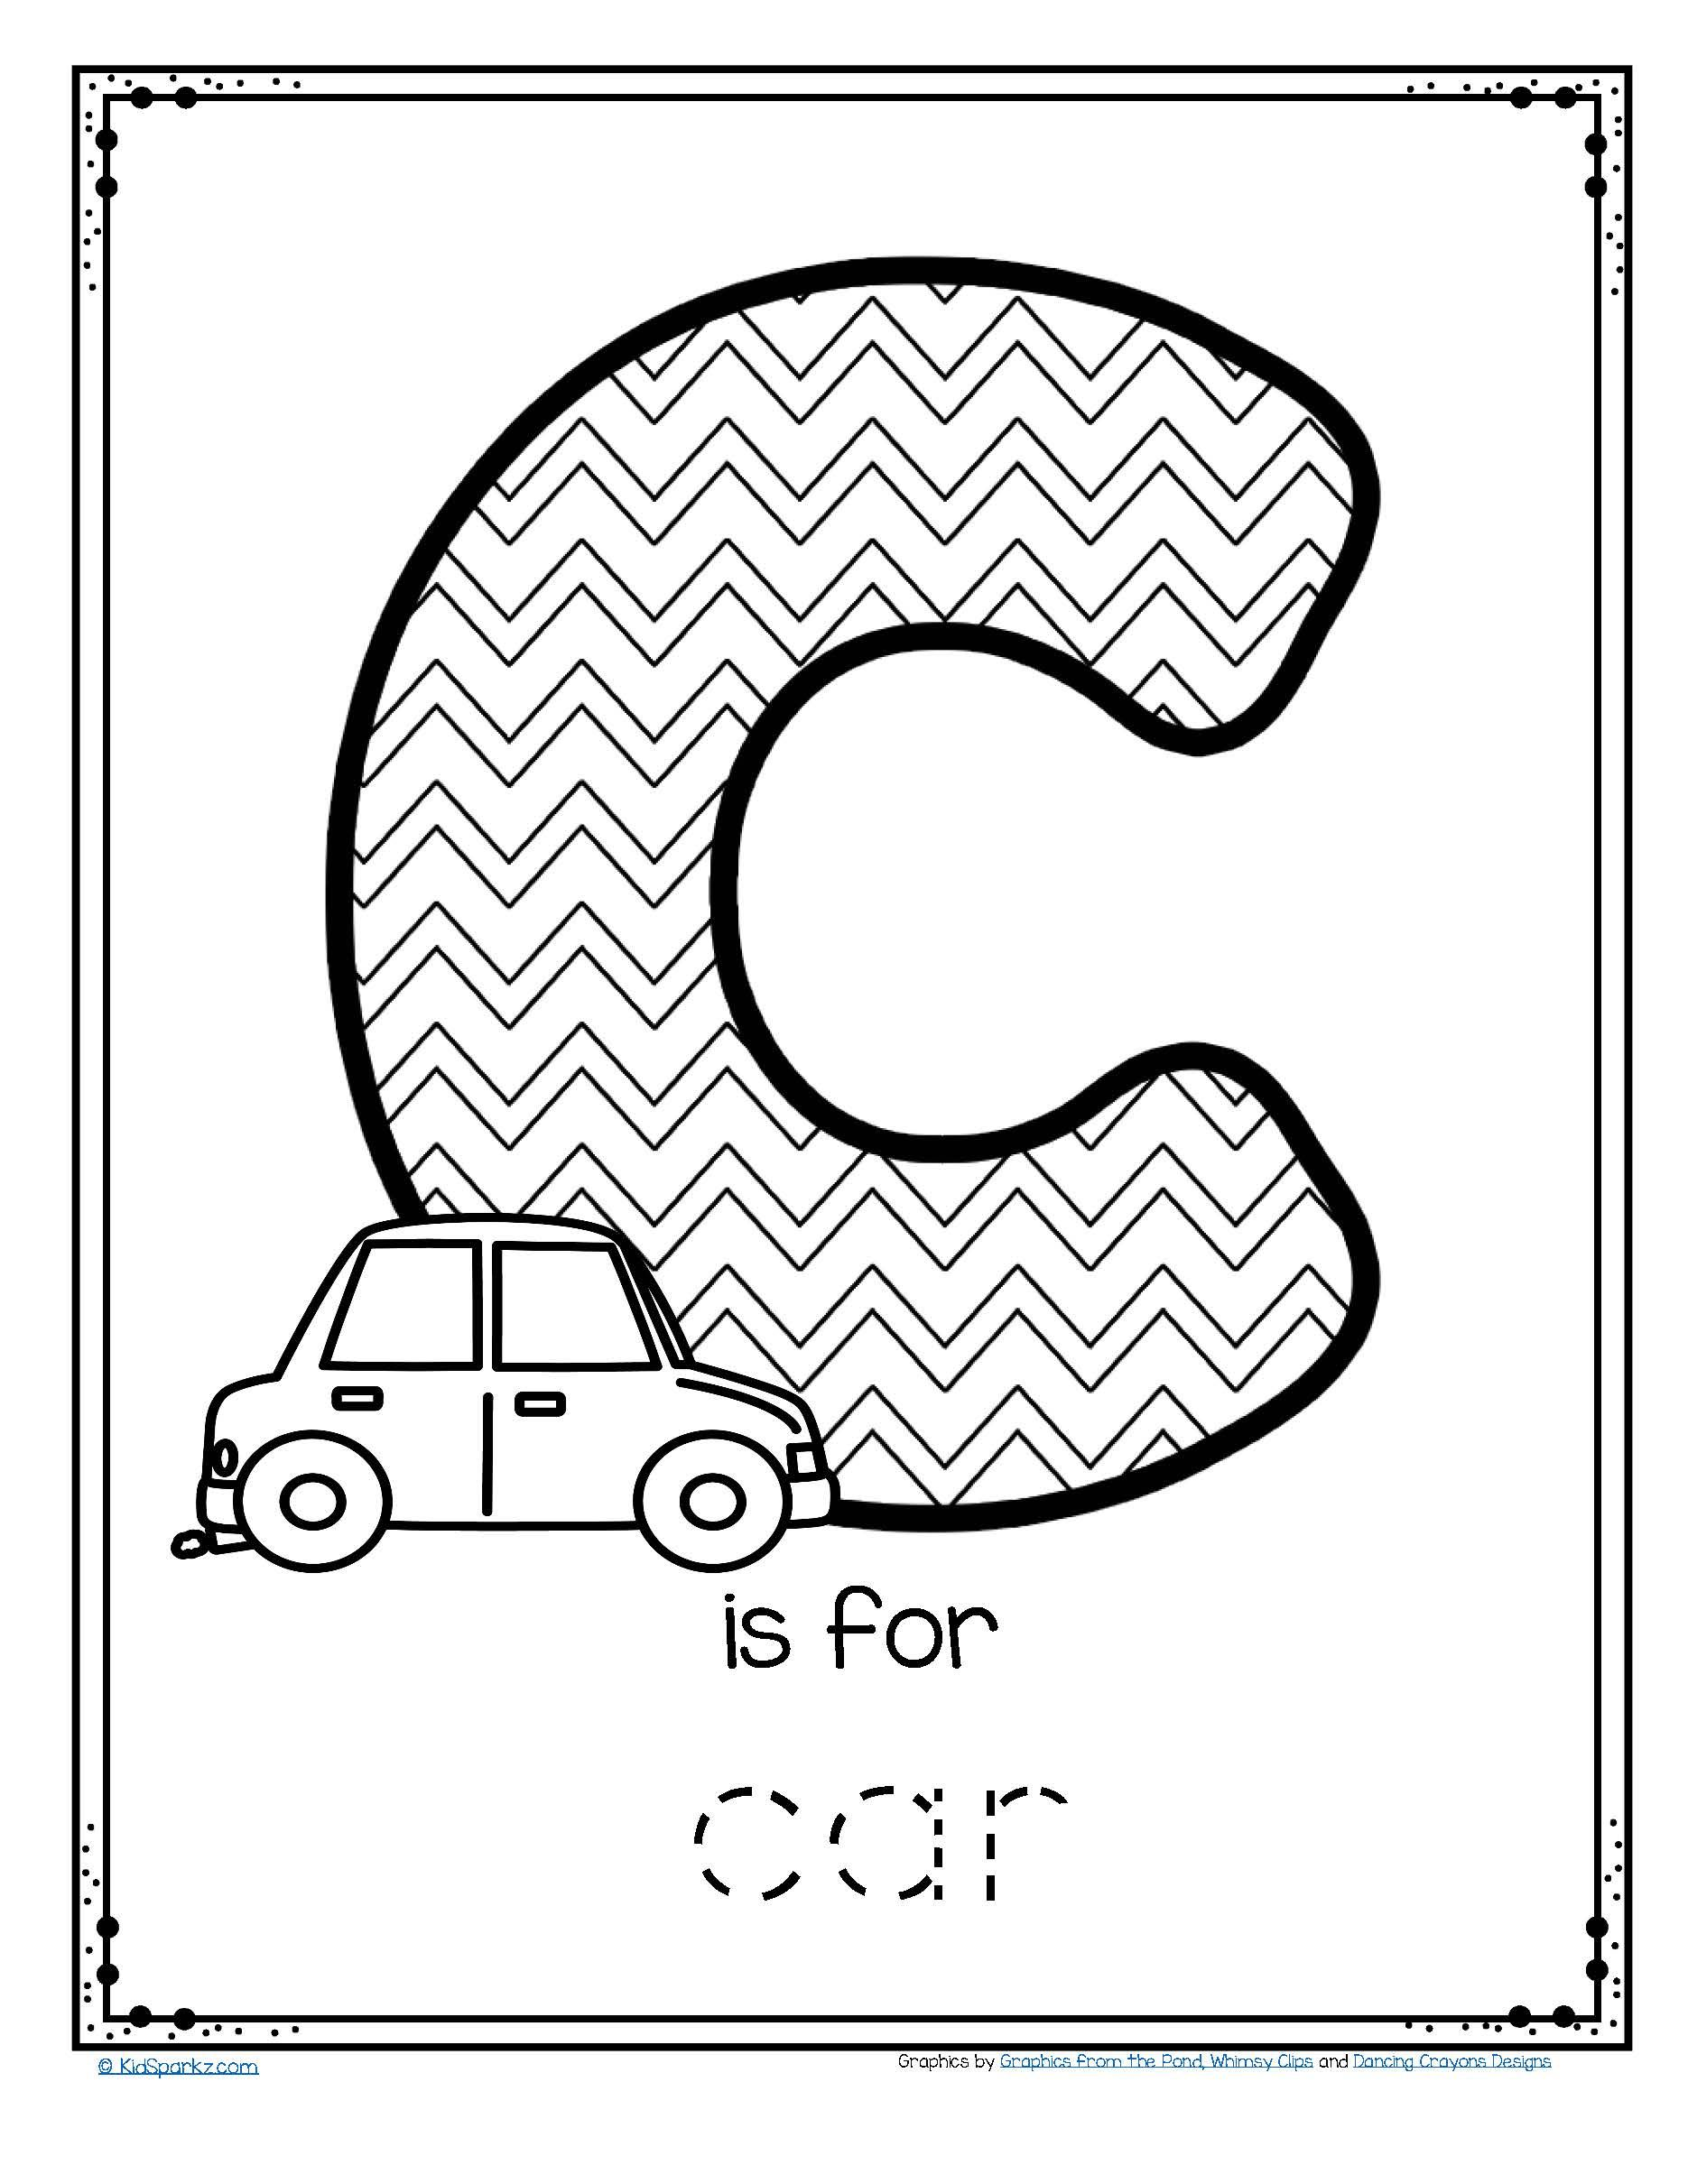 Free C Is For Car Trace And Color Printable Freeprintable Carpreschool Tra Tracing Worksheets Preschool Letter Worksheets For Preschool Preschool Worksheets [ 2420 x 1870 Pixel ]